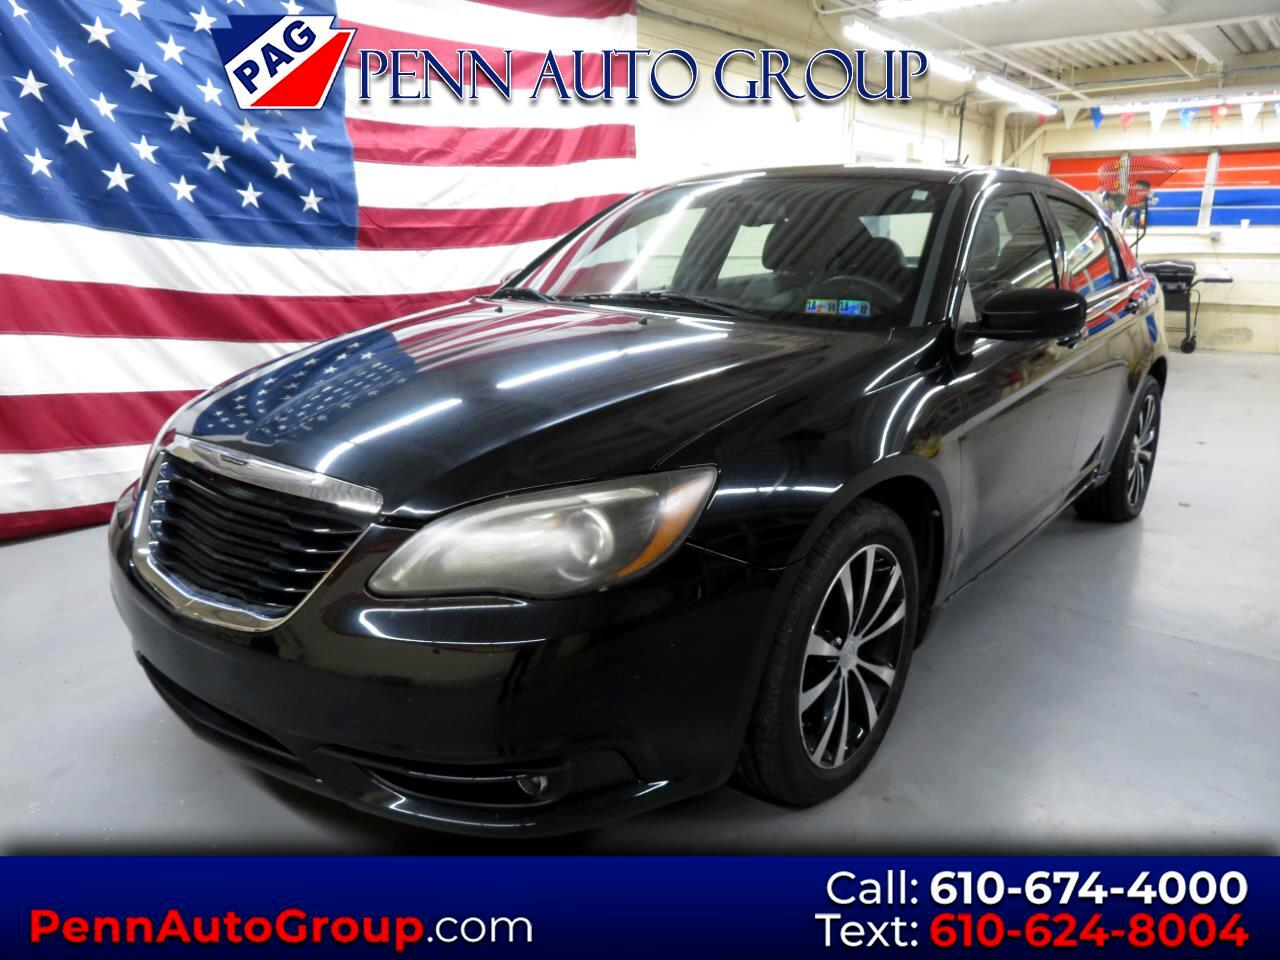 2013 Chrysler 200 4dr Sdn Limited